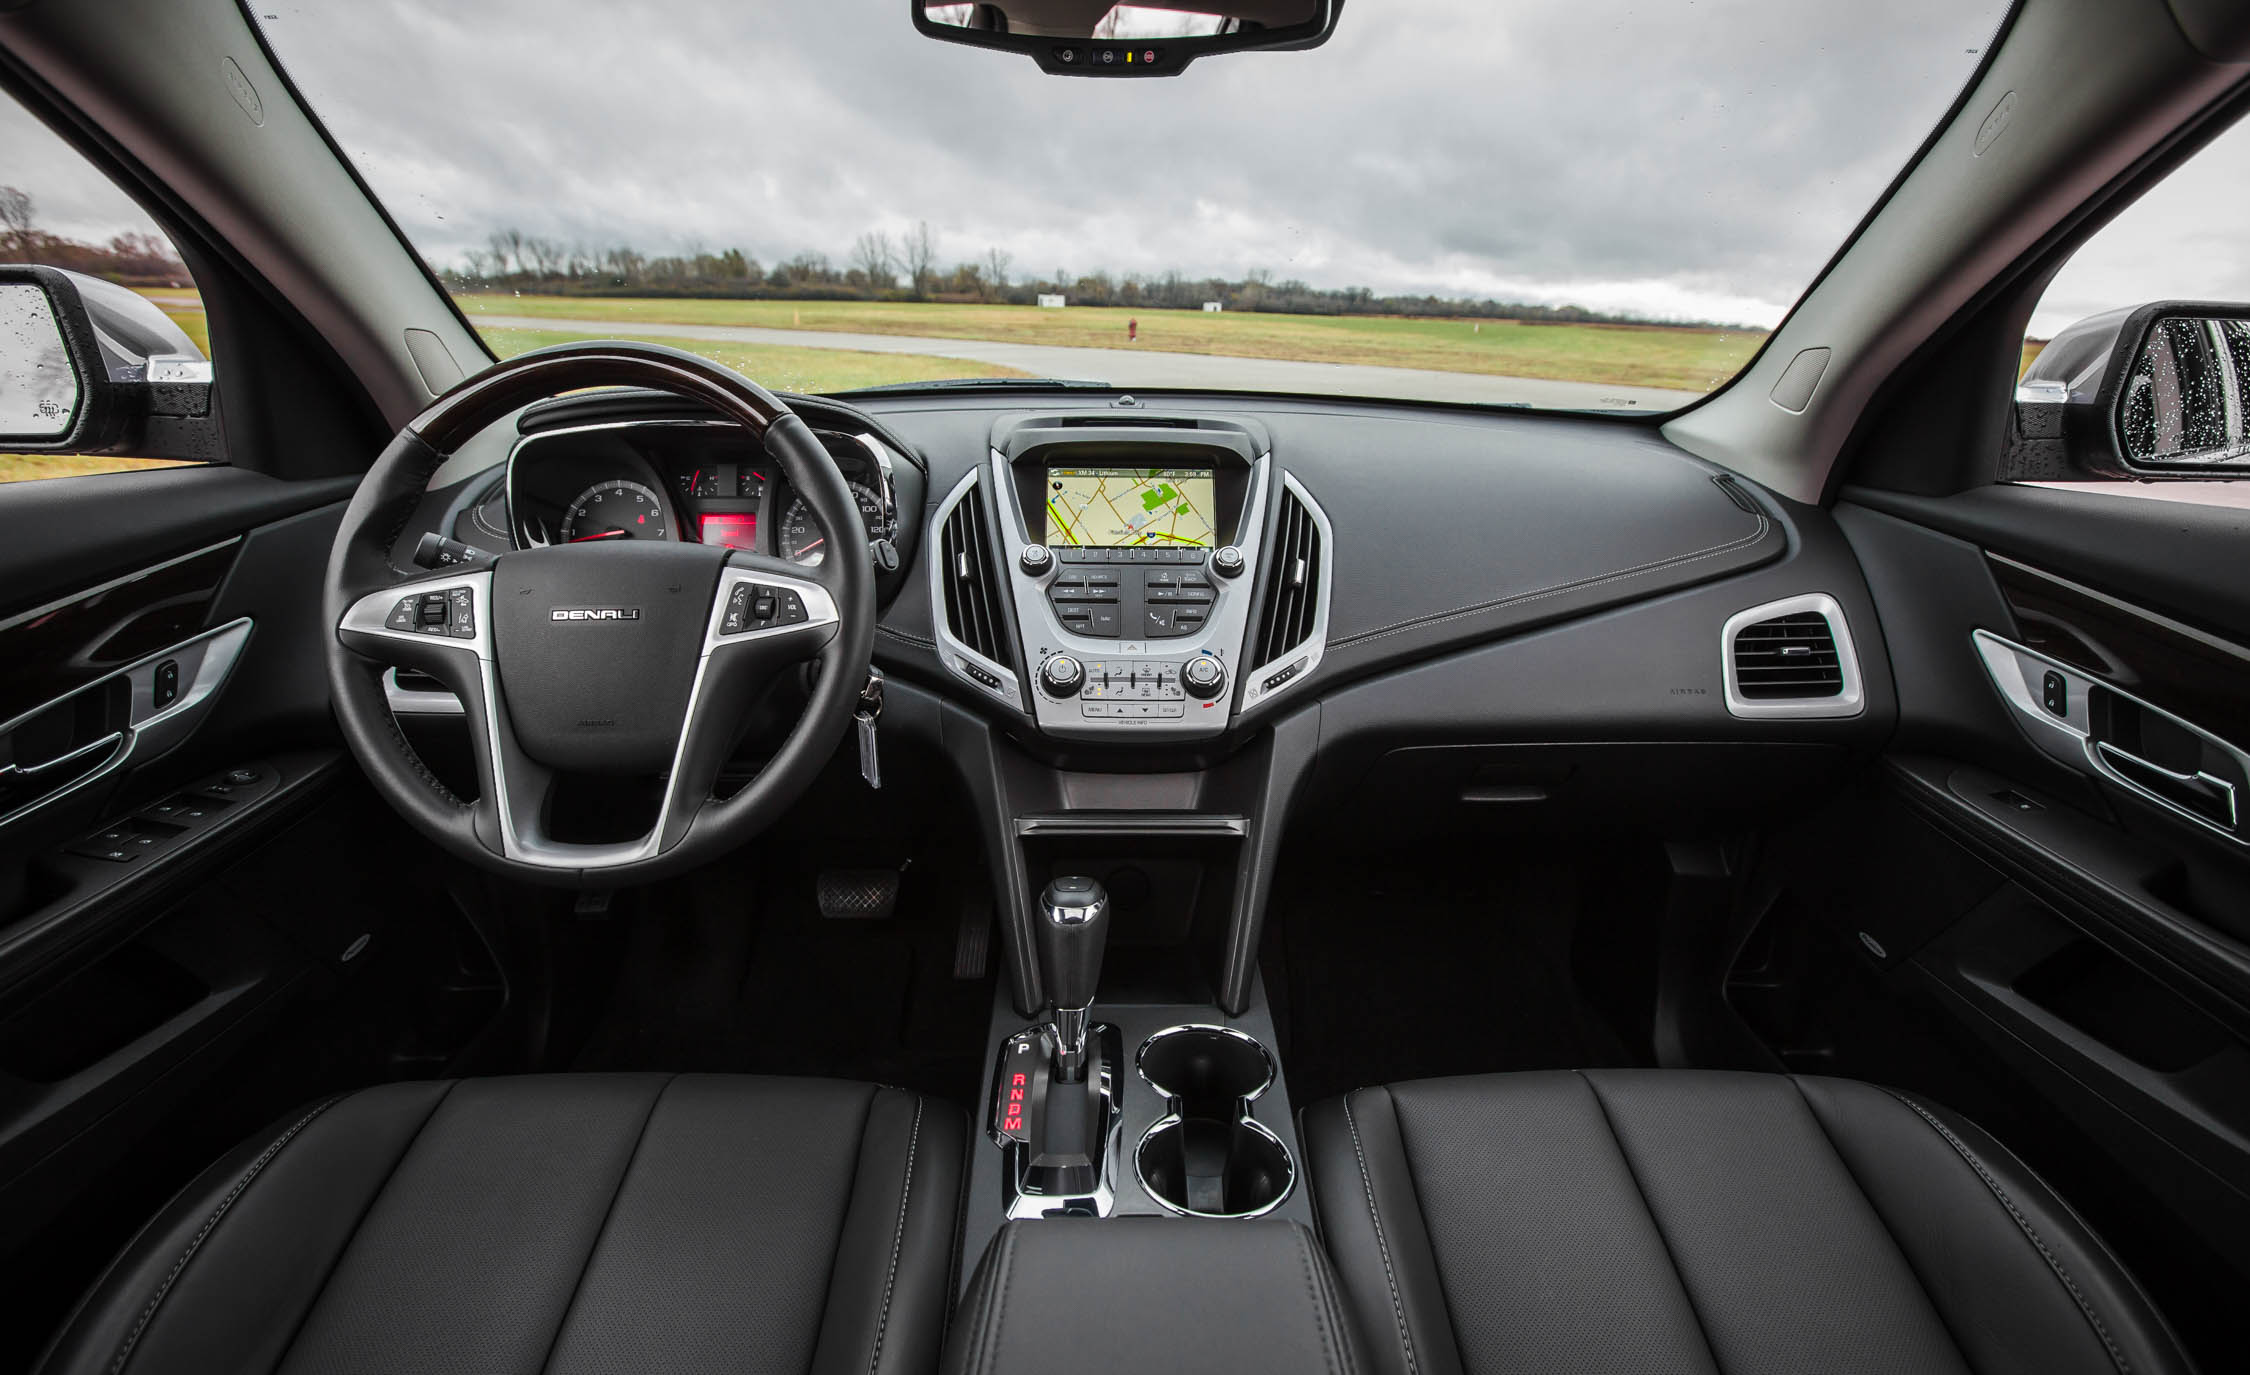 2016 GMC Terrain Denali Interior (Photo 16 of 24)